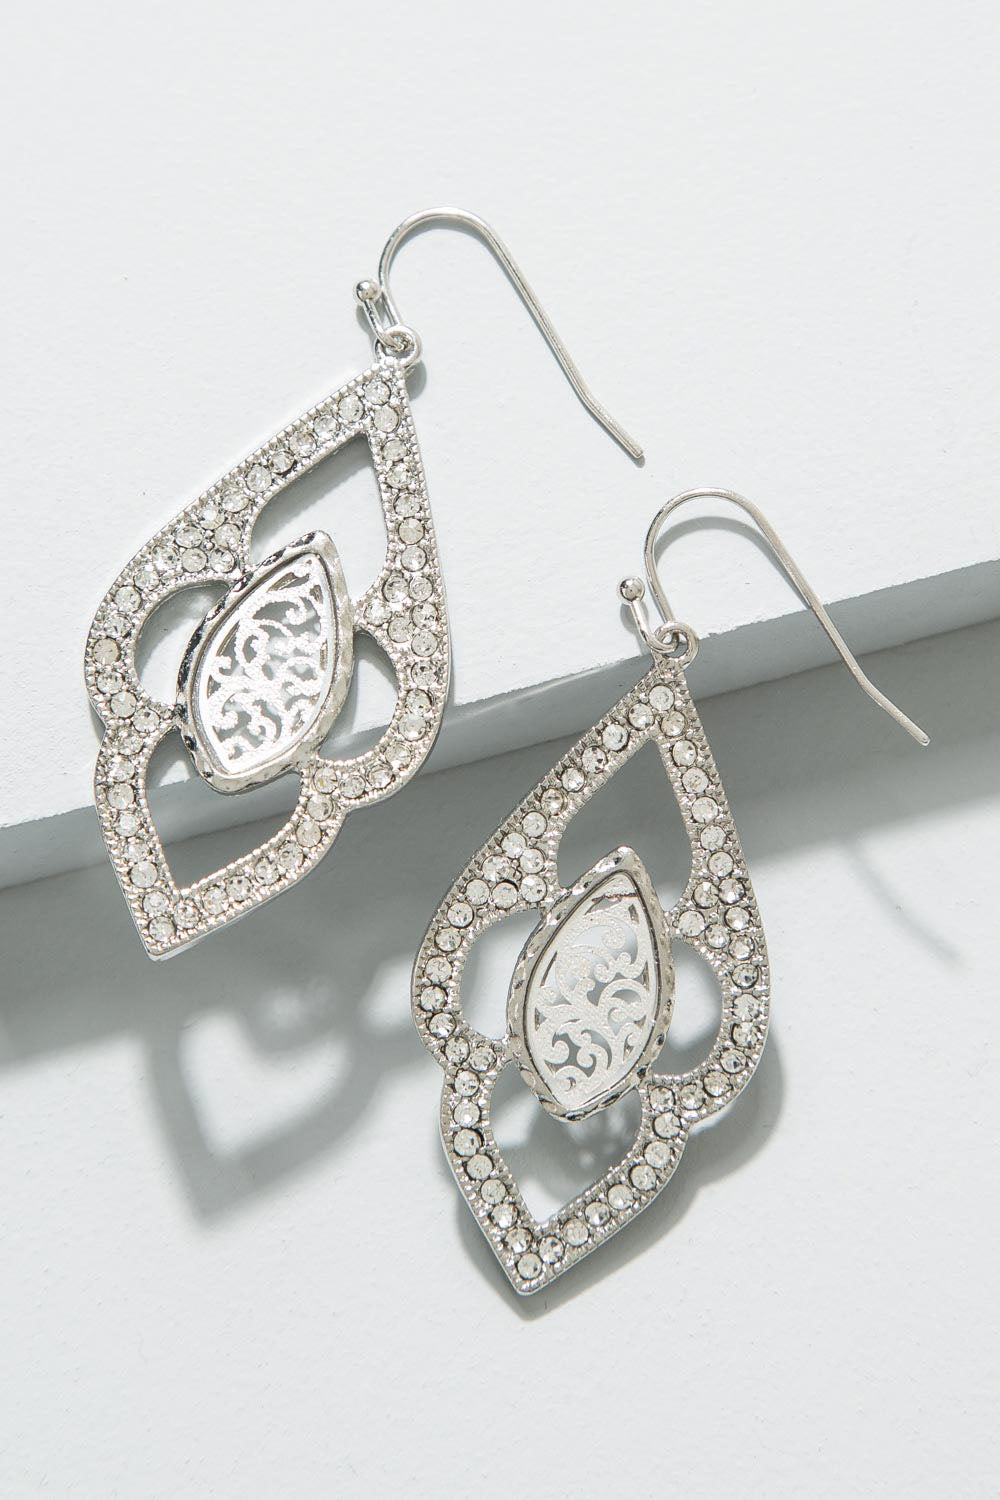 Type 2 Spellbound Earrings